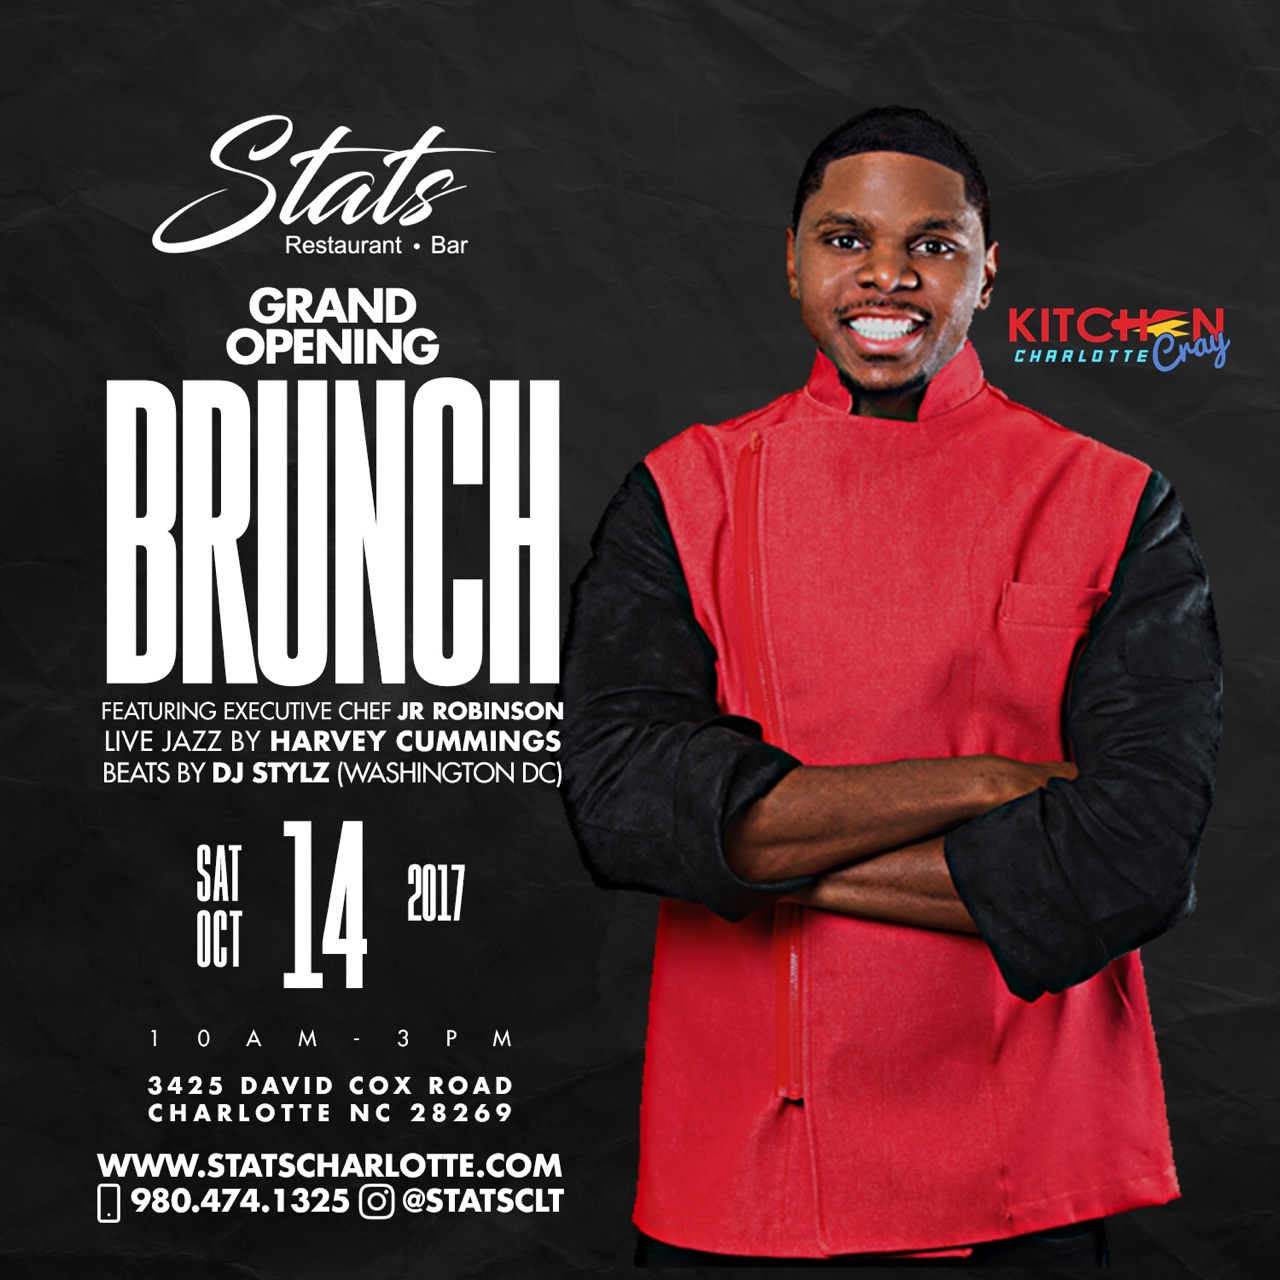 STATS Grand Opening Brunch